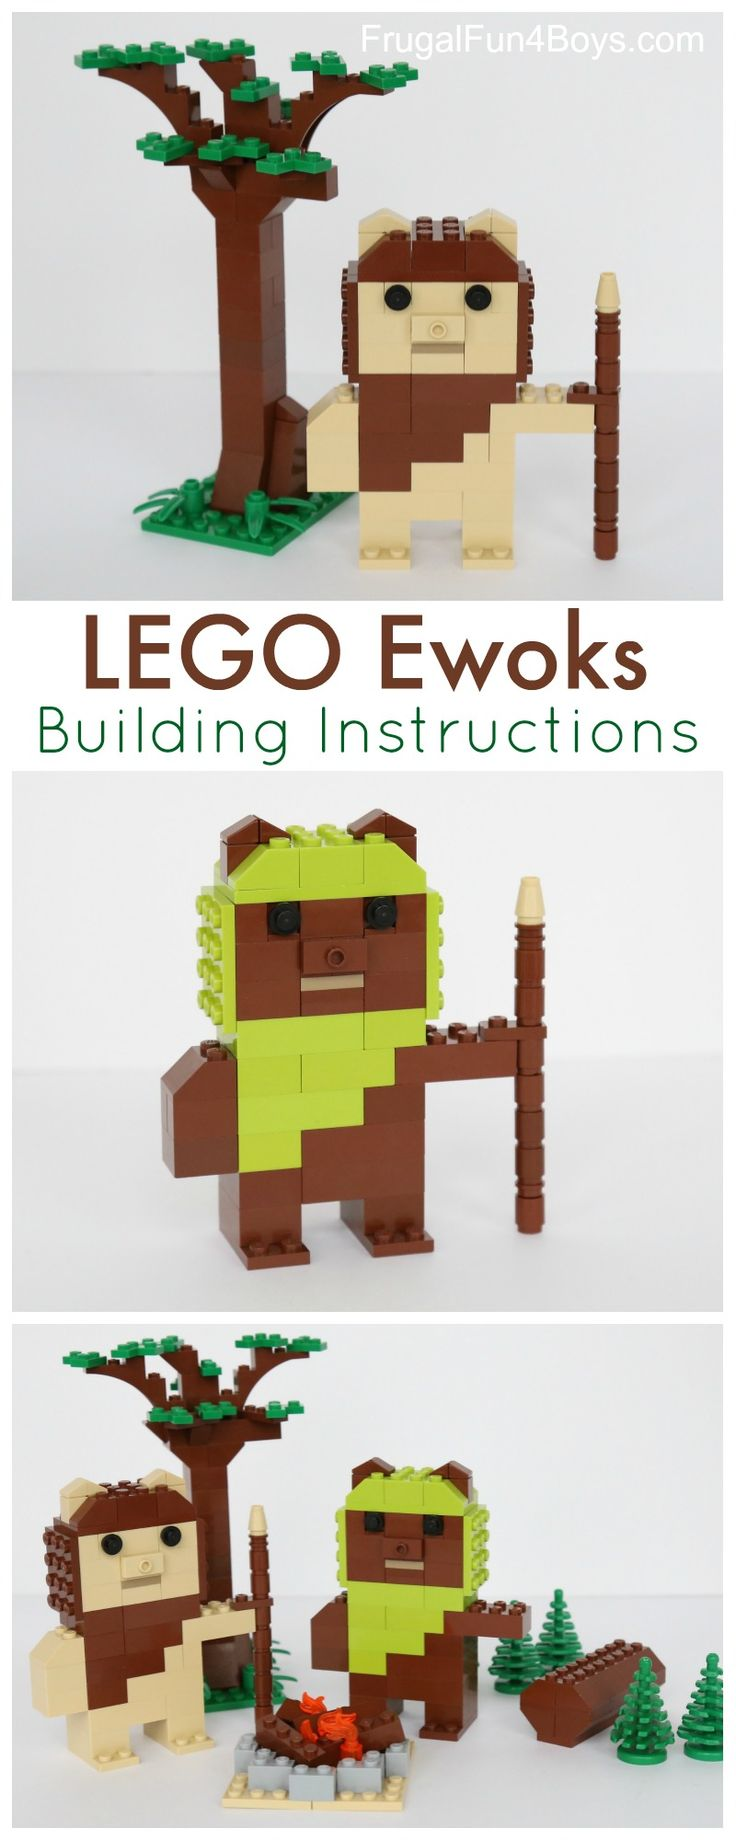 Here's a fun LEGO building project – construct some Ewoks!  You can find step-by-step instructions below. These cute Ewoks fit well with the scale of our other LEGO Star Wars projects – R2-D2, C3P0, and Yoda. We chose to make tan and brown Ewoks, with lime green and brown for the hood colors.  Build them …